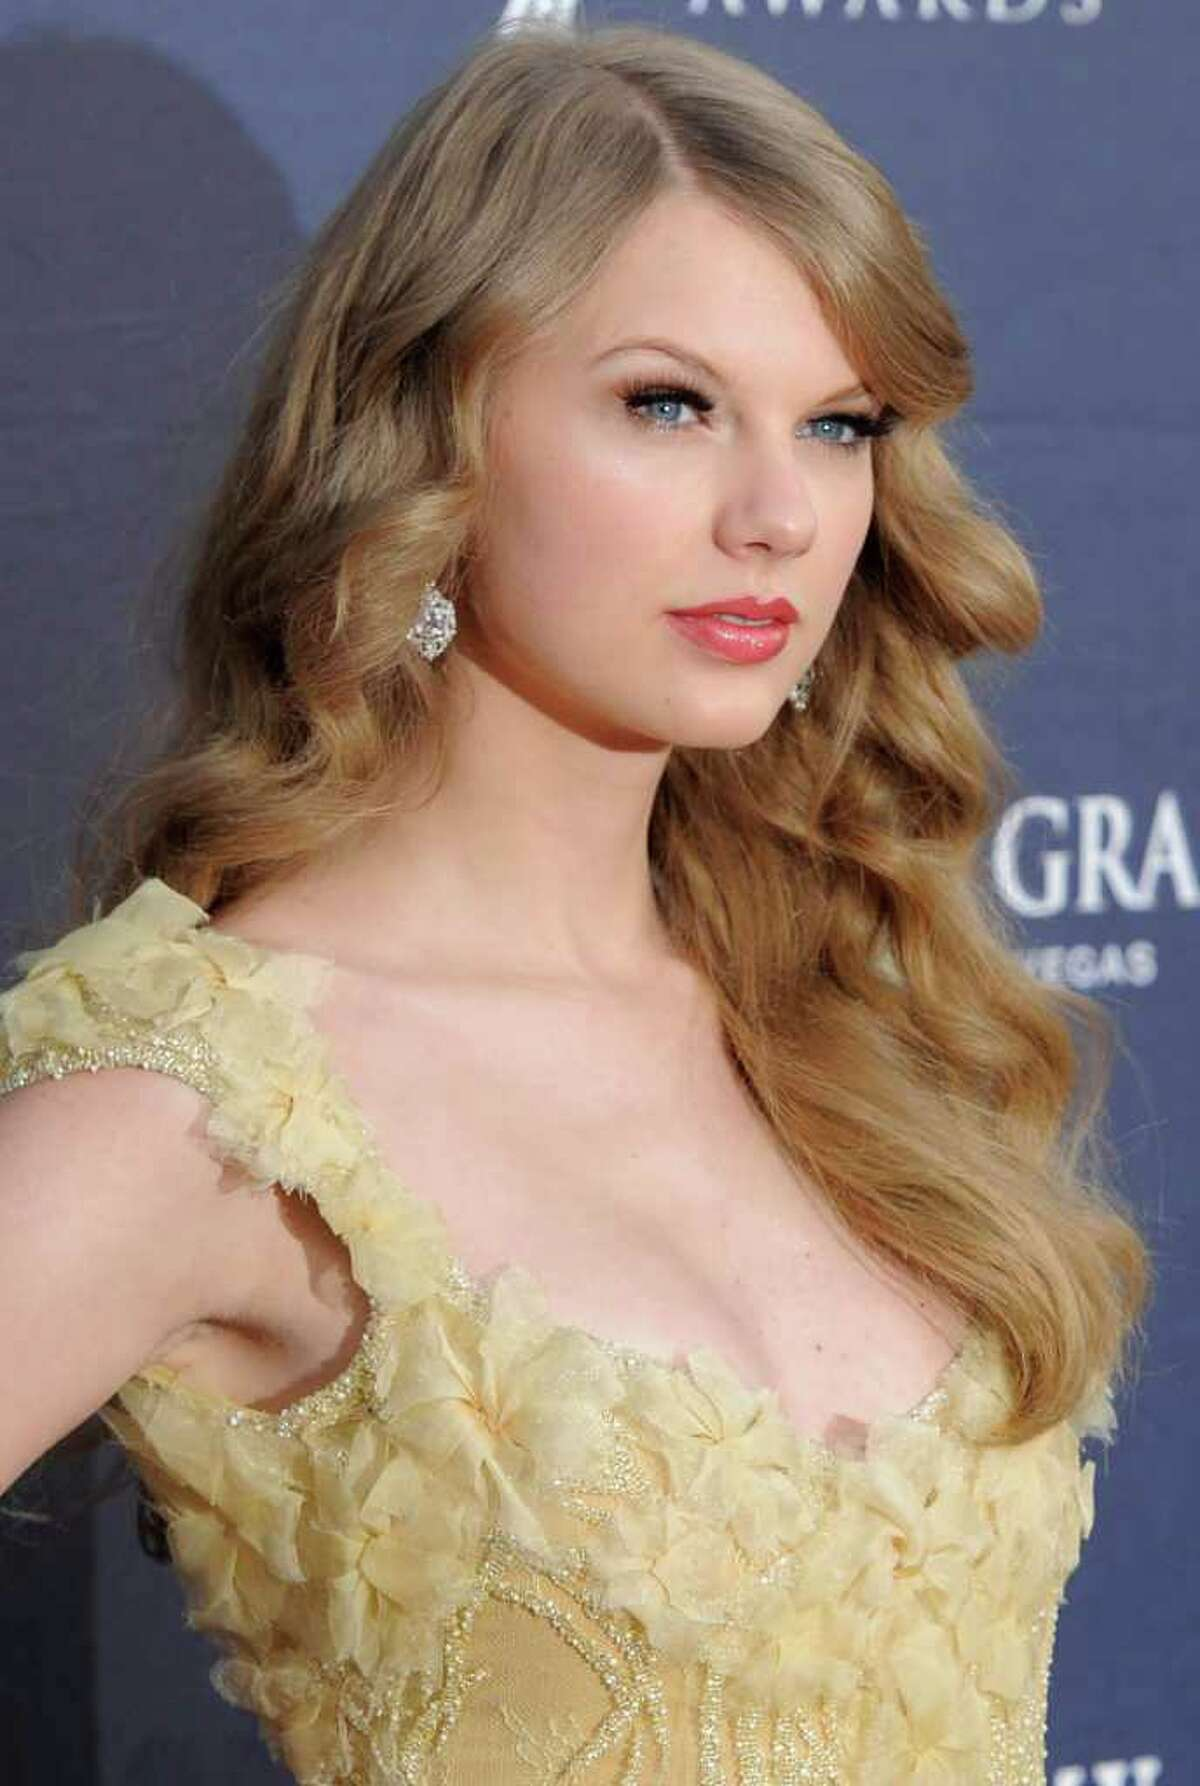 FILE - In an April 3, 2011 file photo, Taylor Swift arrives at the 46th Annual Academy of Country Music Awards in Las Vegas. Swift will perform at the CMA Music Fest which runs June 9-12 in Nashville. (AP Photo/Chris Pizzello, File)